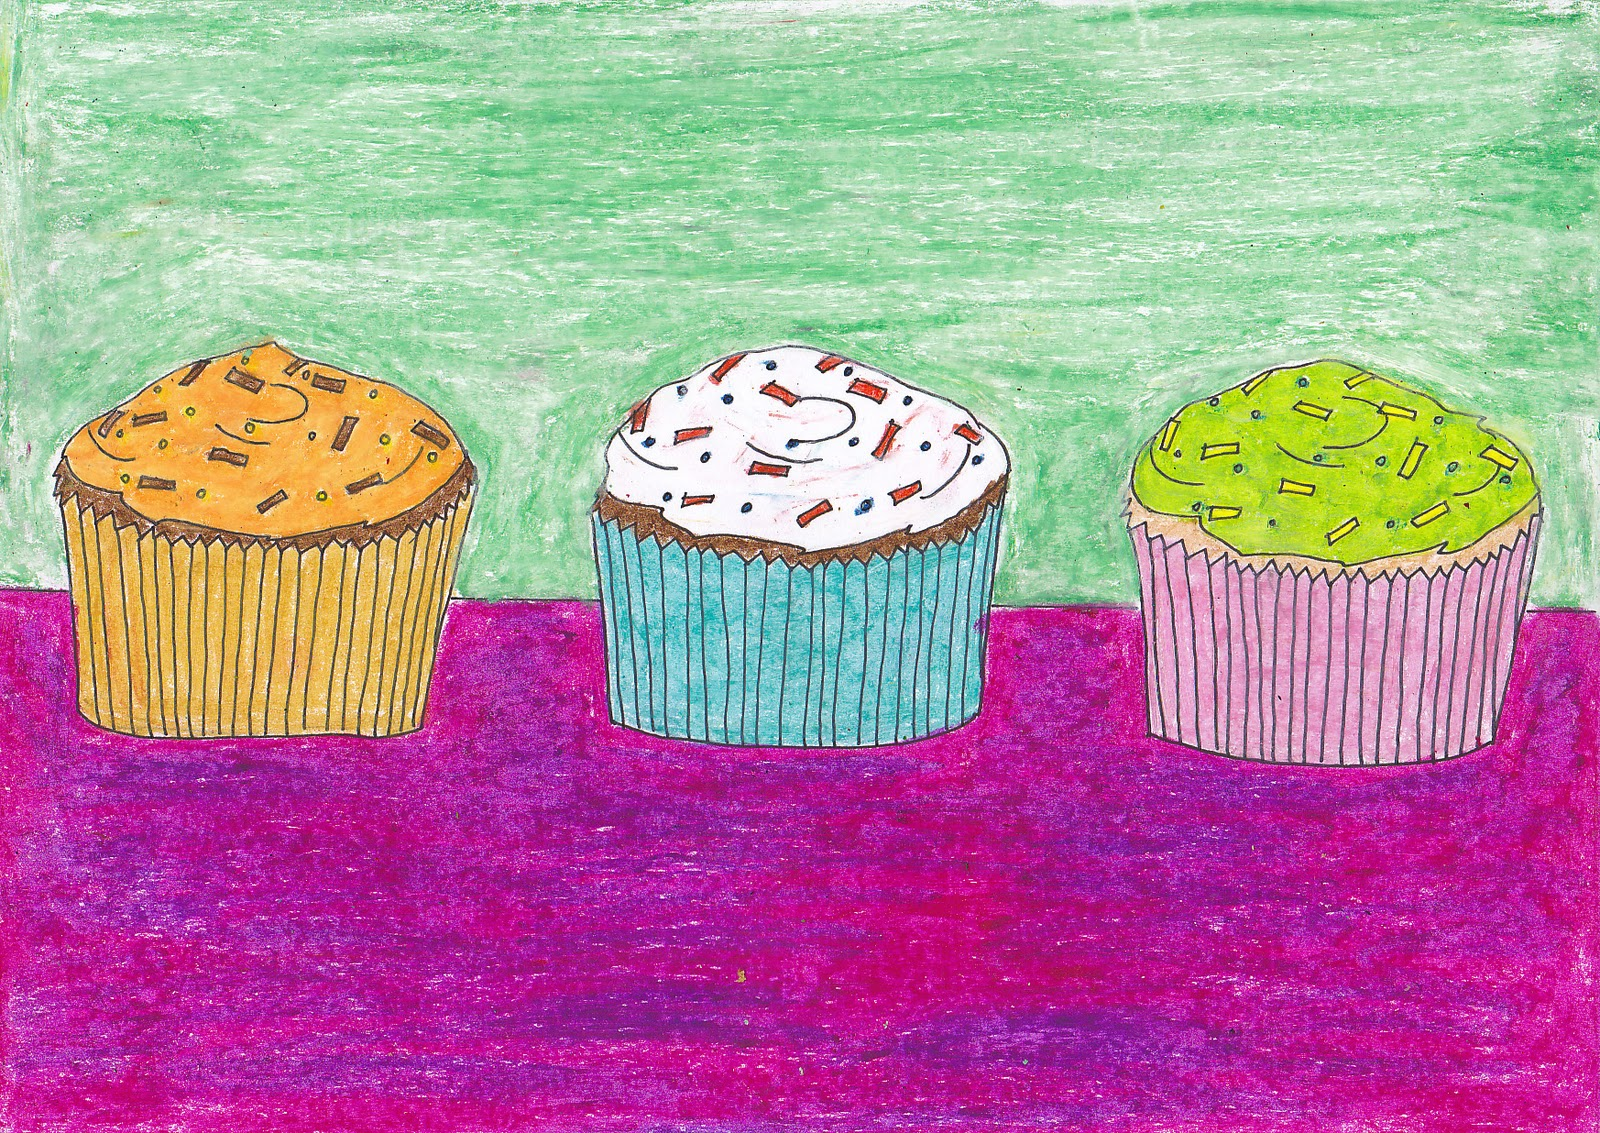 Simple art project ideas wayne thiebaud cupcakes for Simple art projects